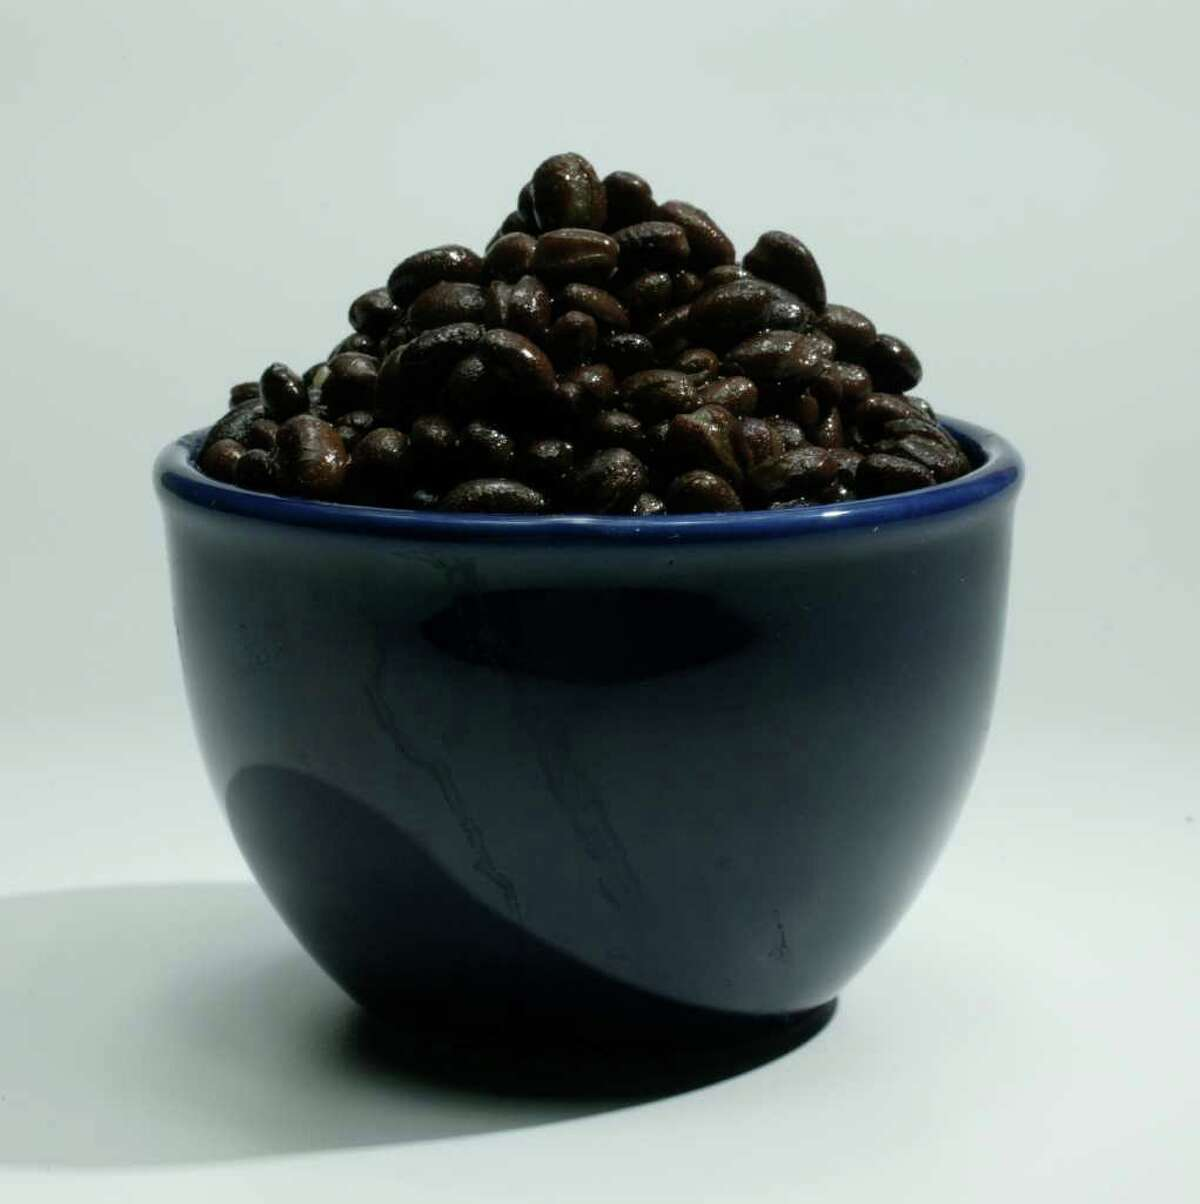 A bowl of black beans was shot in studio, 6/23/04, for a Food Cover. (Buster Dean / Chronicle). HOUCHRON CAPTION (07/07/2004): Satisfy the vegetarian in your life. Add cooked rice and canned corn to mashed or pureed beans for a meat-and fish-free option.